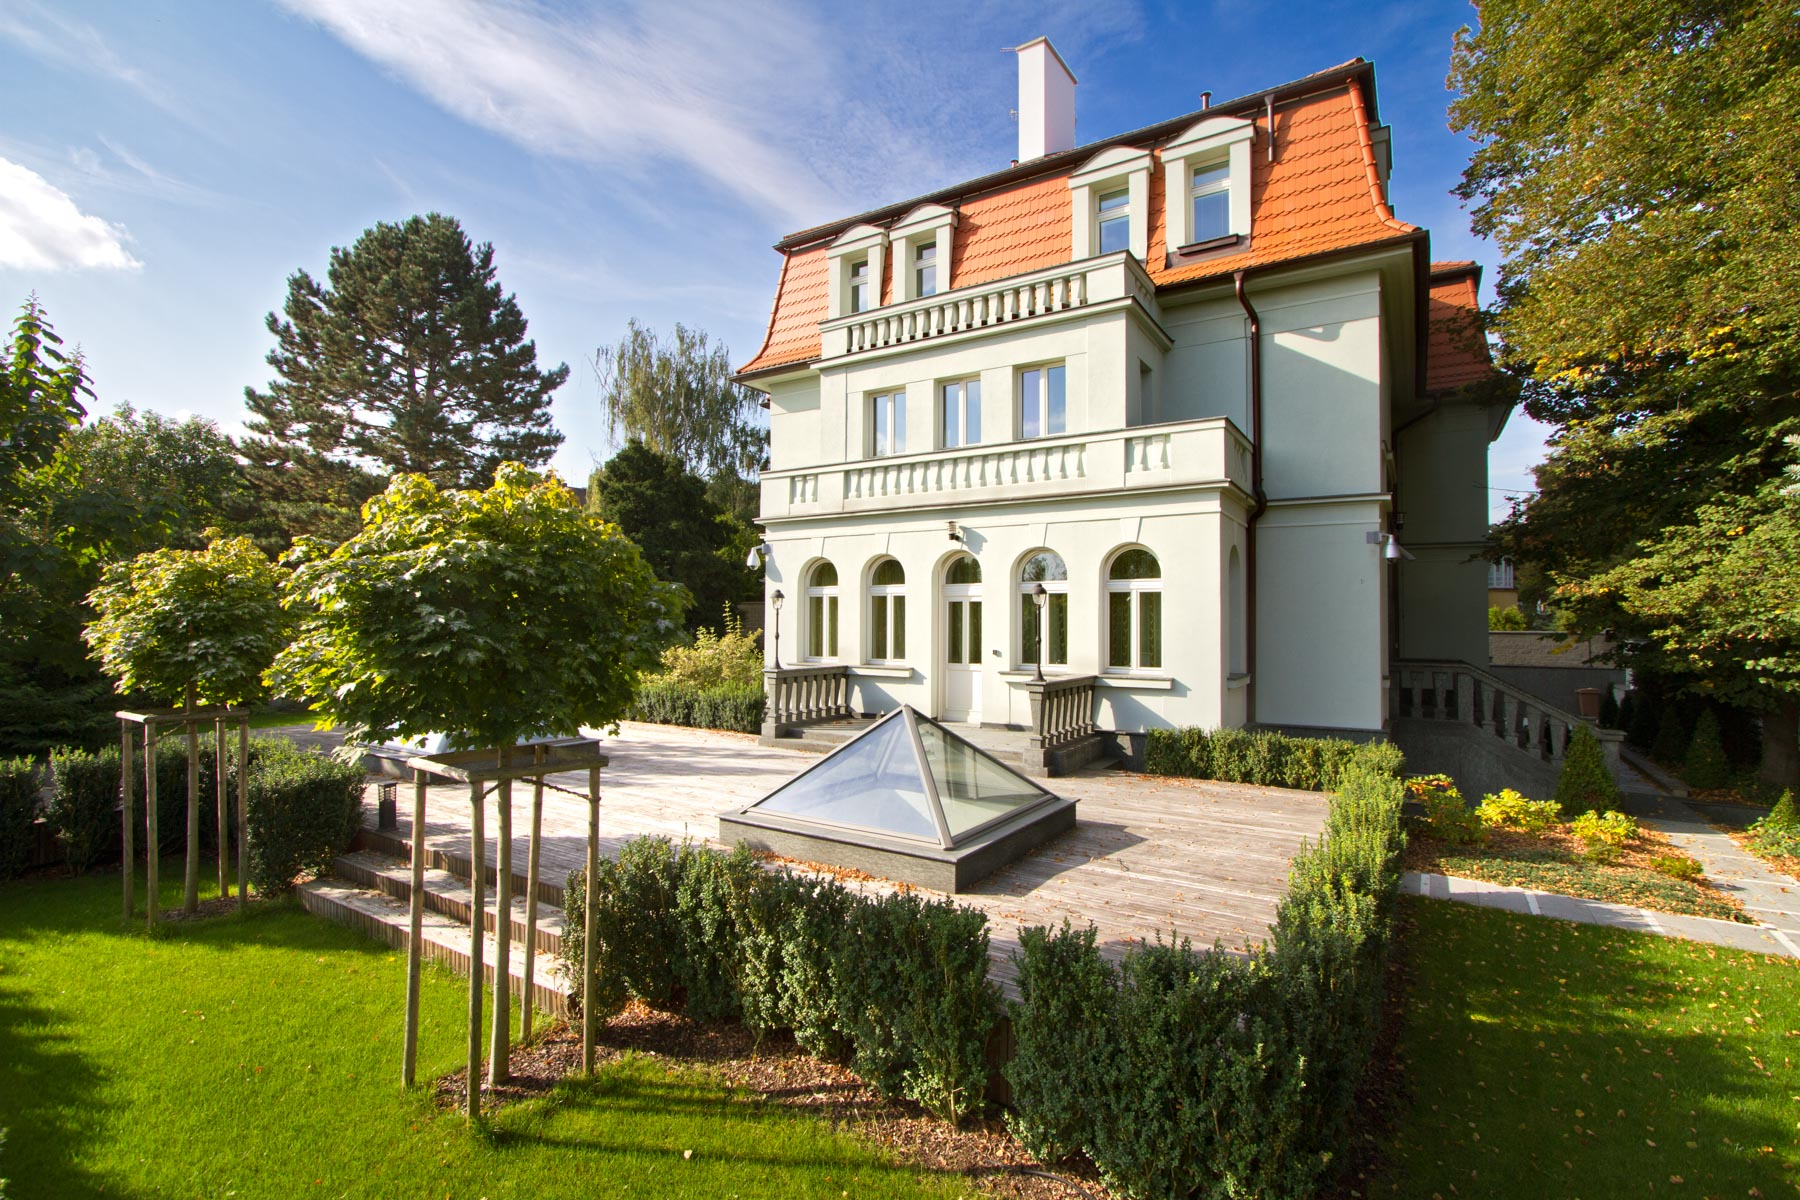 Single Family Home for Sale at Ambassador's villa in a diplomatic district of Prague Rooseveltova, Prague, Prague, 16000 Czech Republic